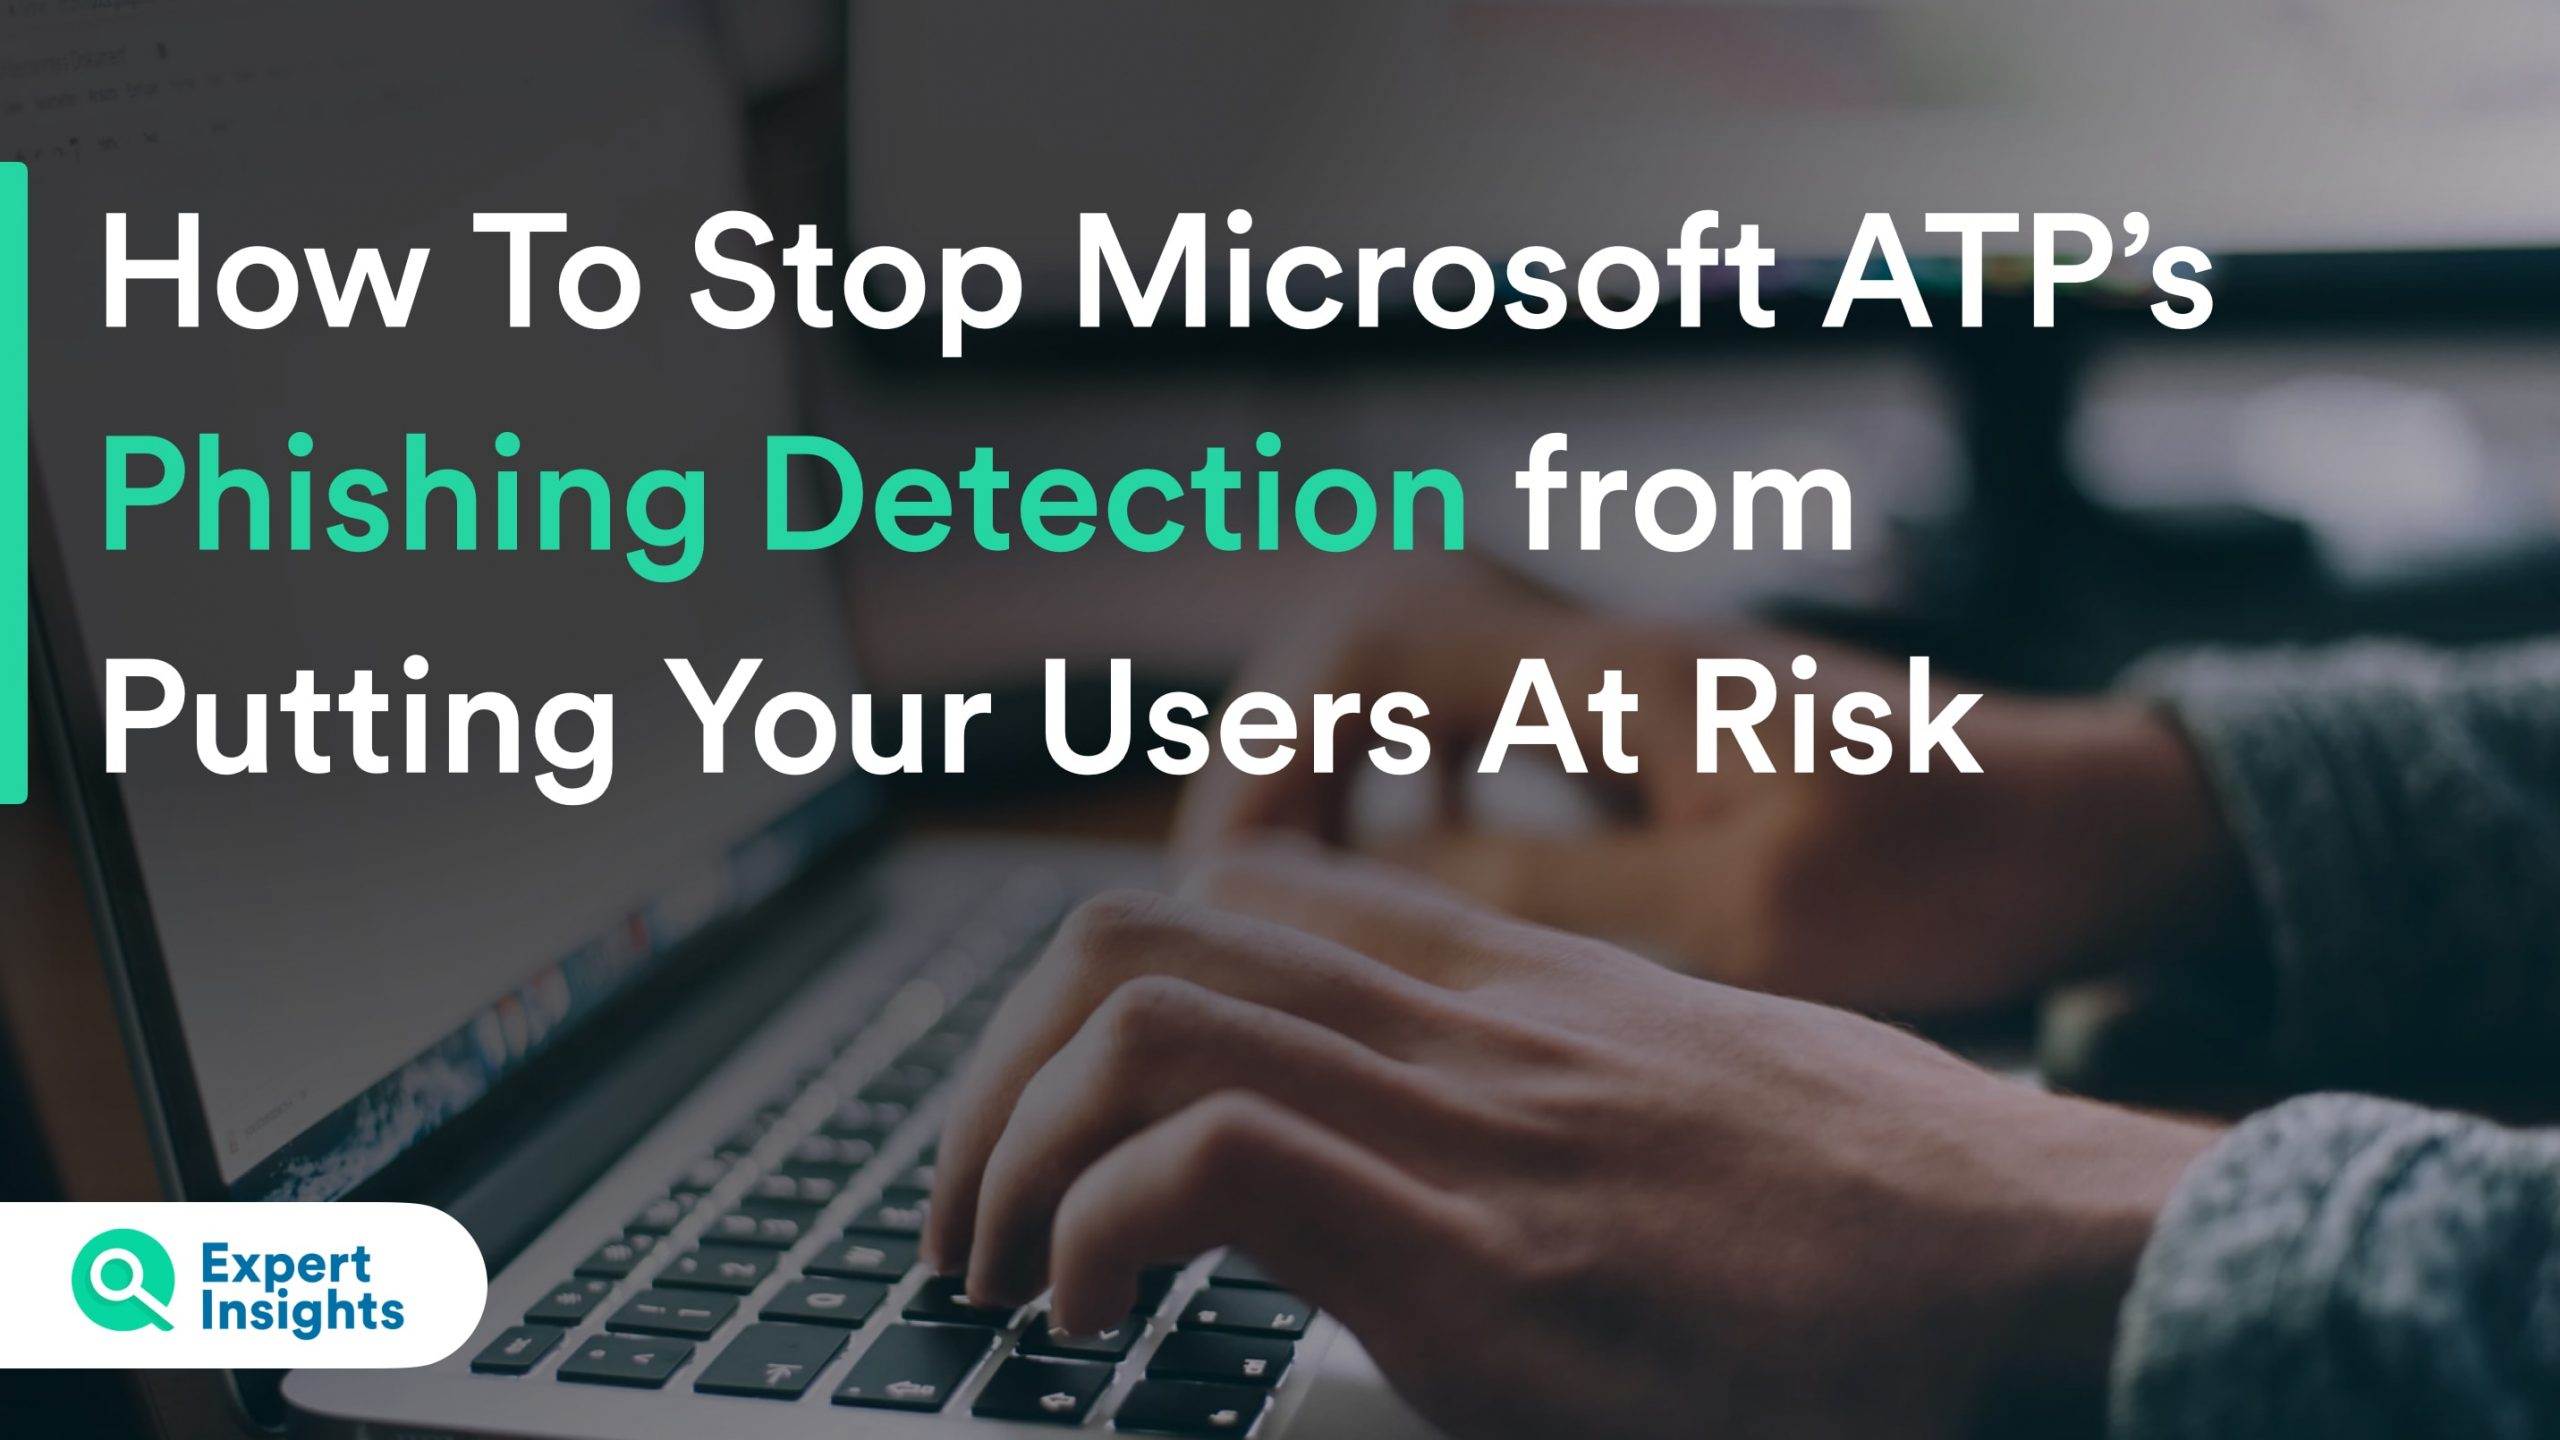 How to Stop Microsoft ATP's Phishing Detection from Putting Your Users at Risk